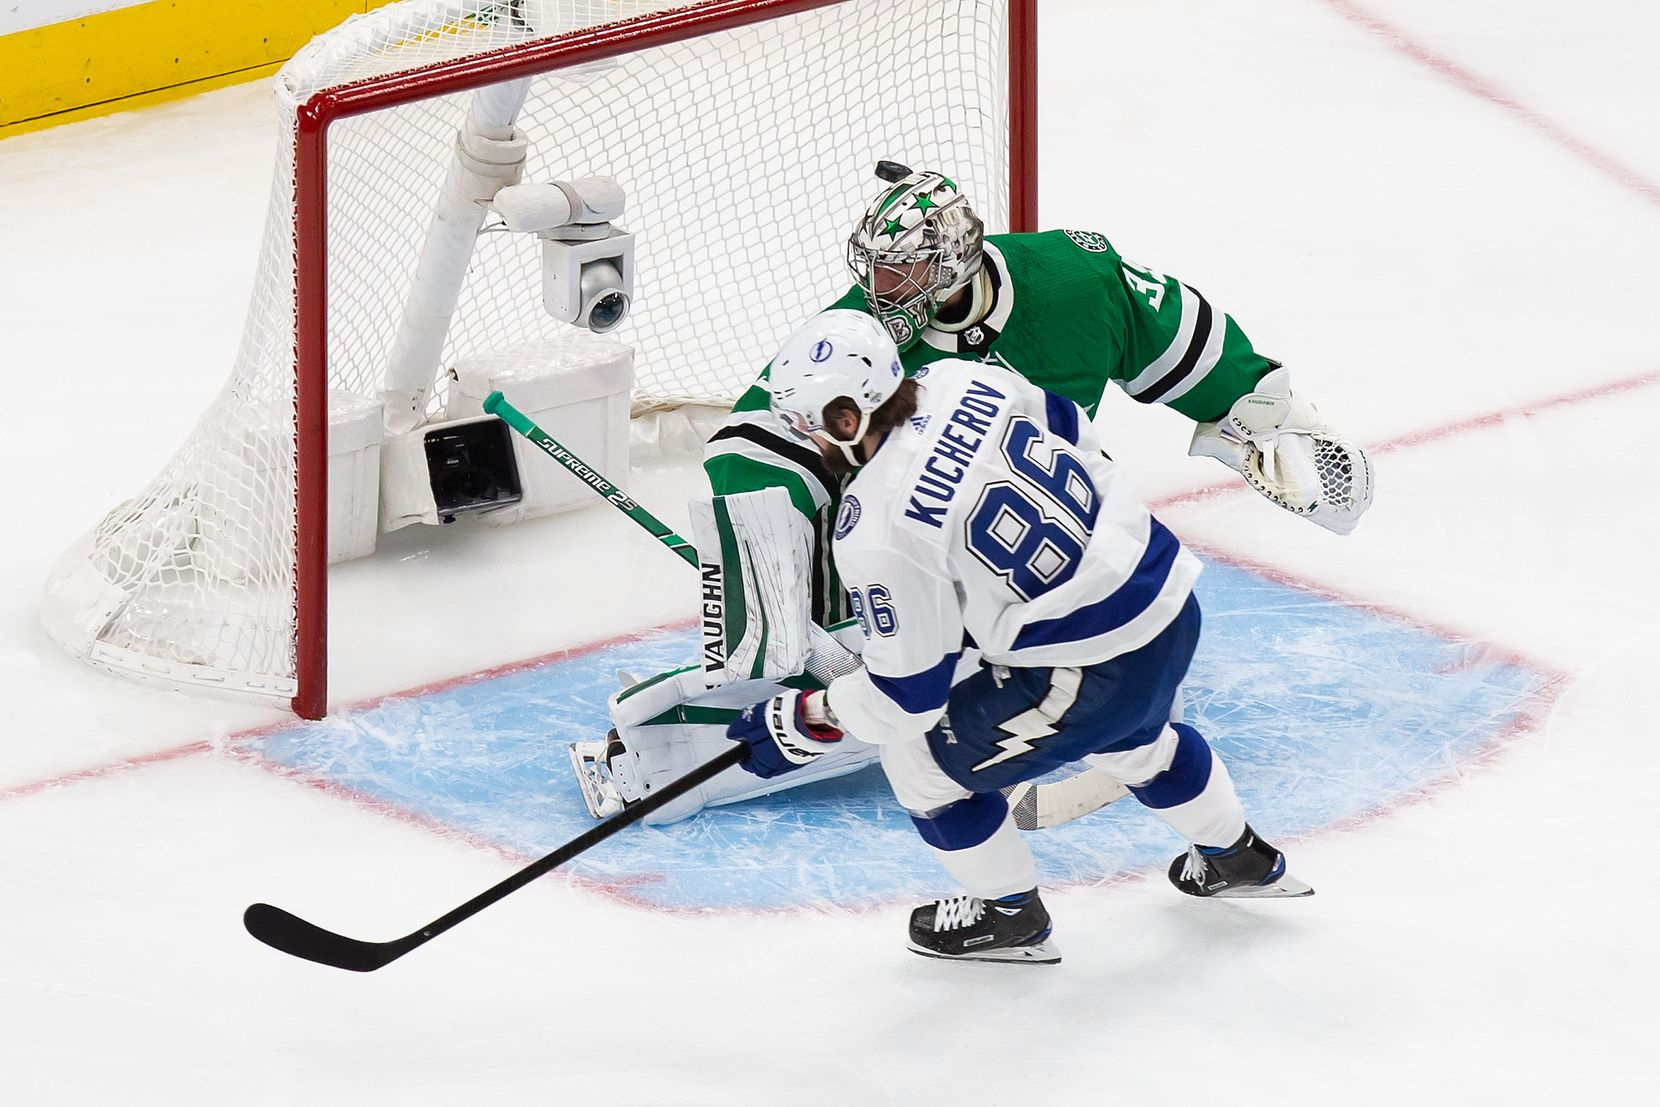 Goaltender Anton Khudobin (35) of the Dallas Stars can't stop Nikita Kucherov (86) of the Tampa Bay Lightning from scoring during Game Three of the Stanley Cup Final at Rogers Place in Edmonton, Alberta, Canada on Wednesday, September 23, 2020. (Codie McLachlan/Special Contributor)